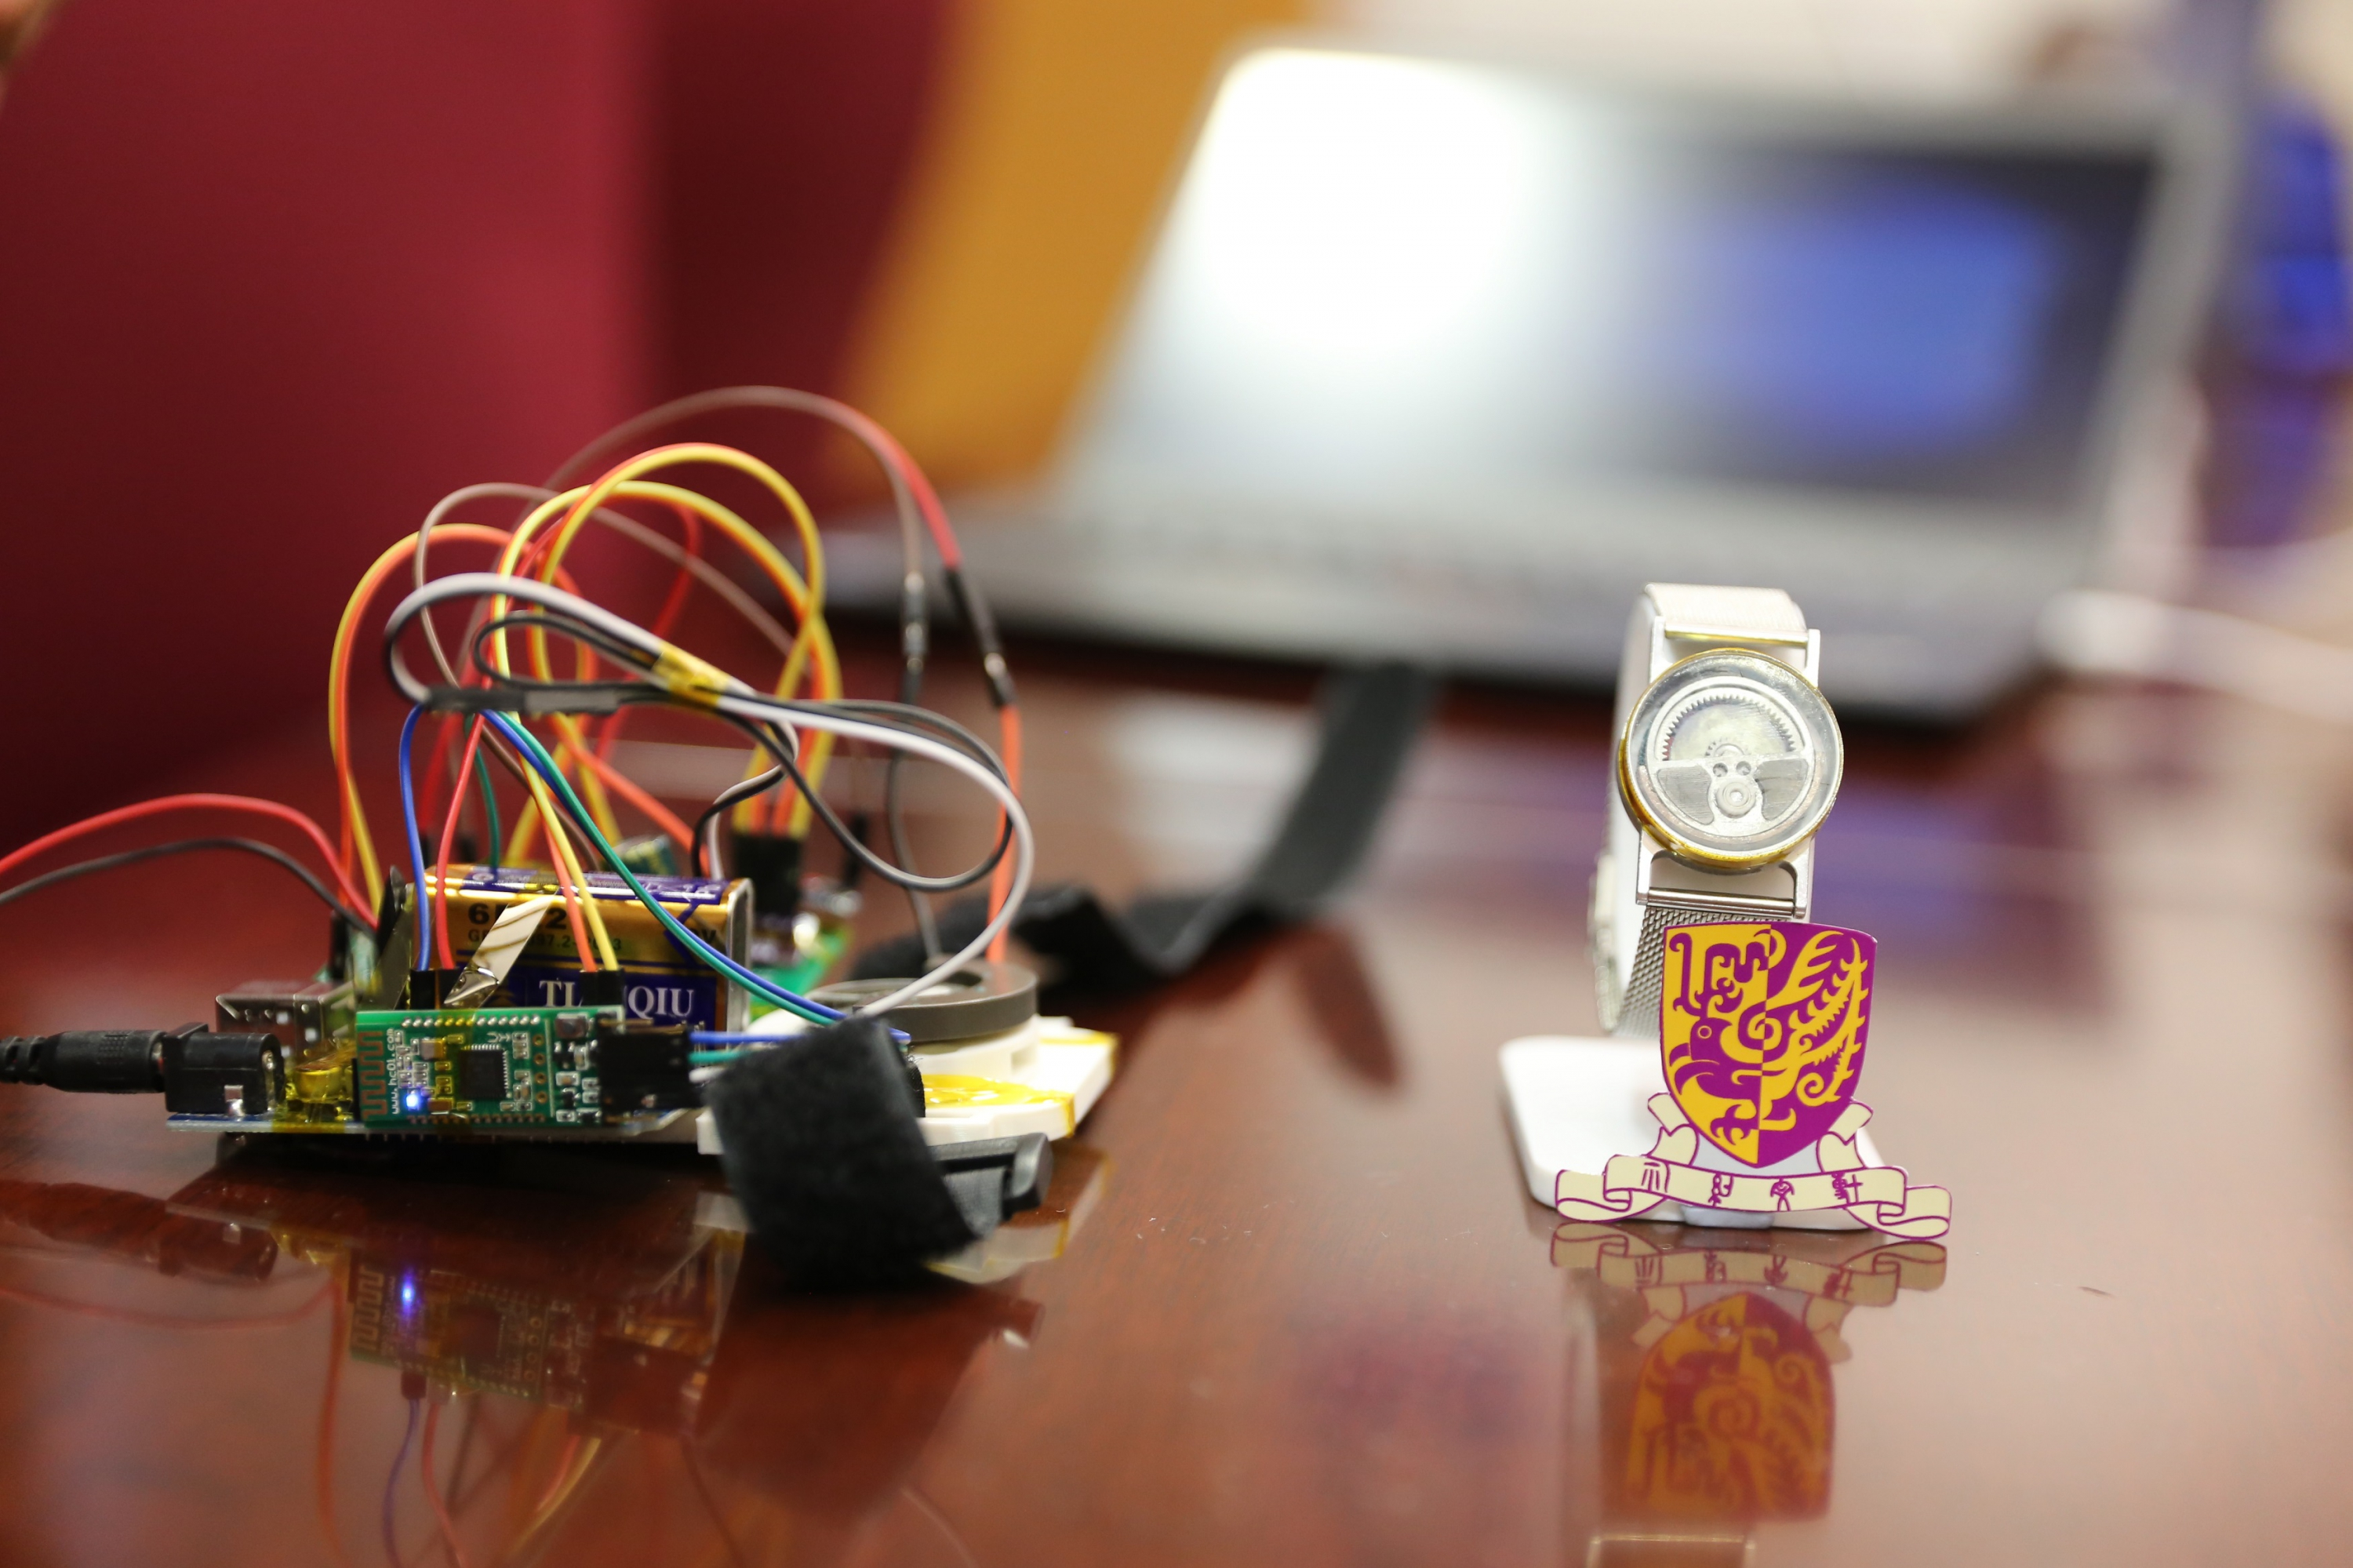 The team has produced a miniature energy harvester while maintaining sufficient electricity output to power smart watches.